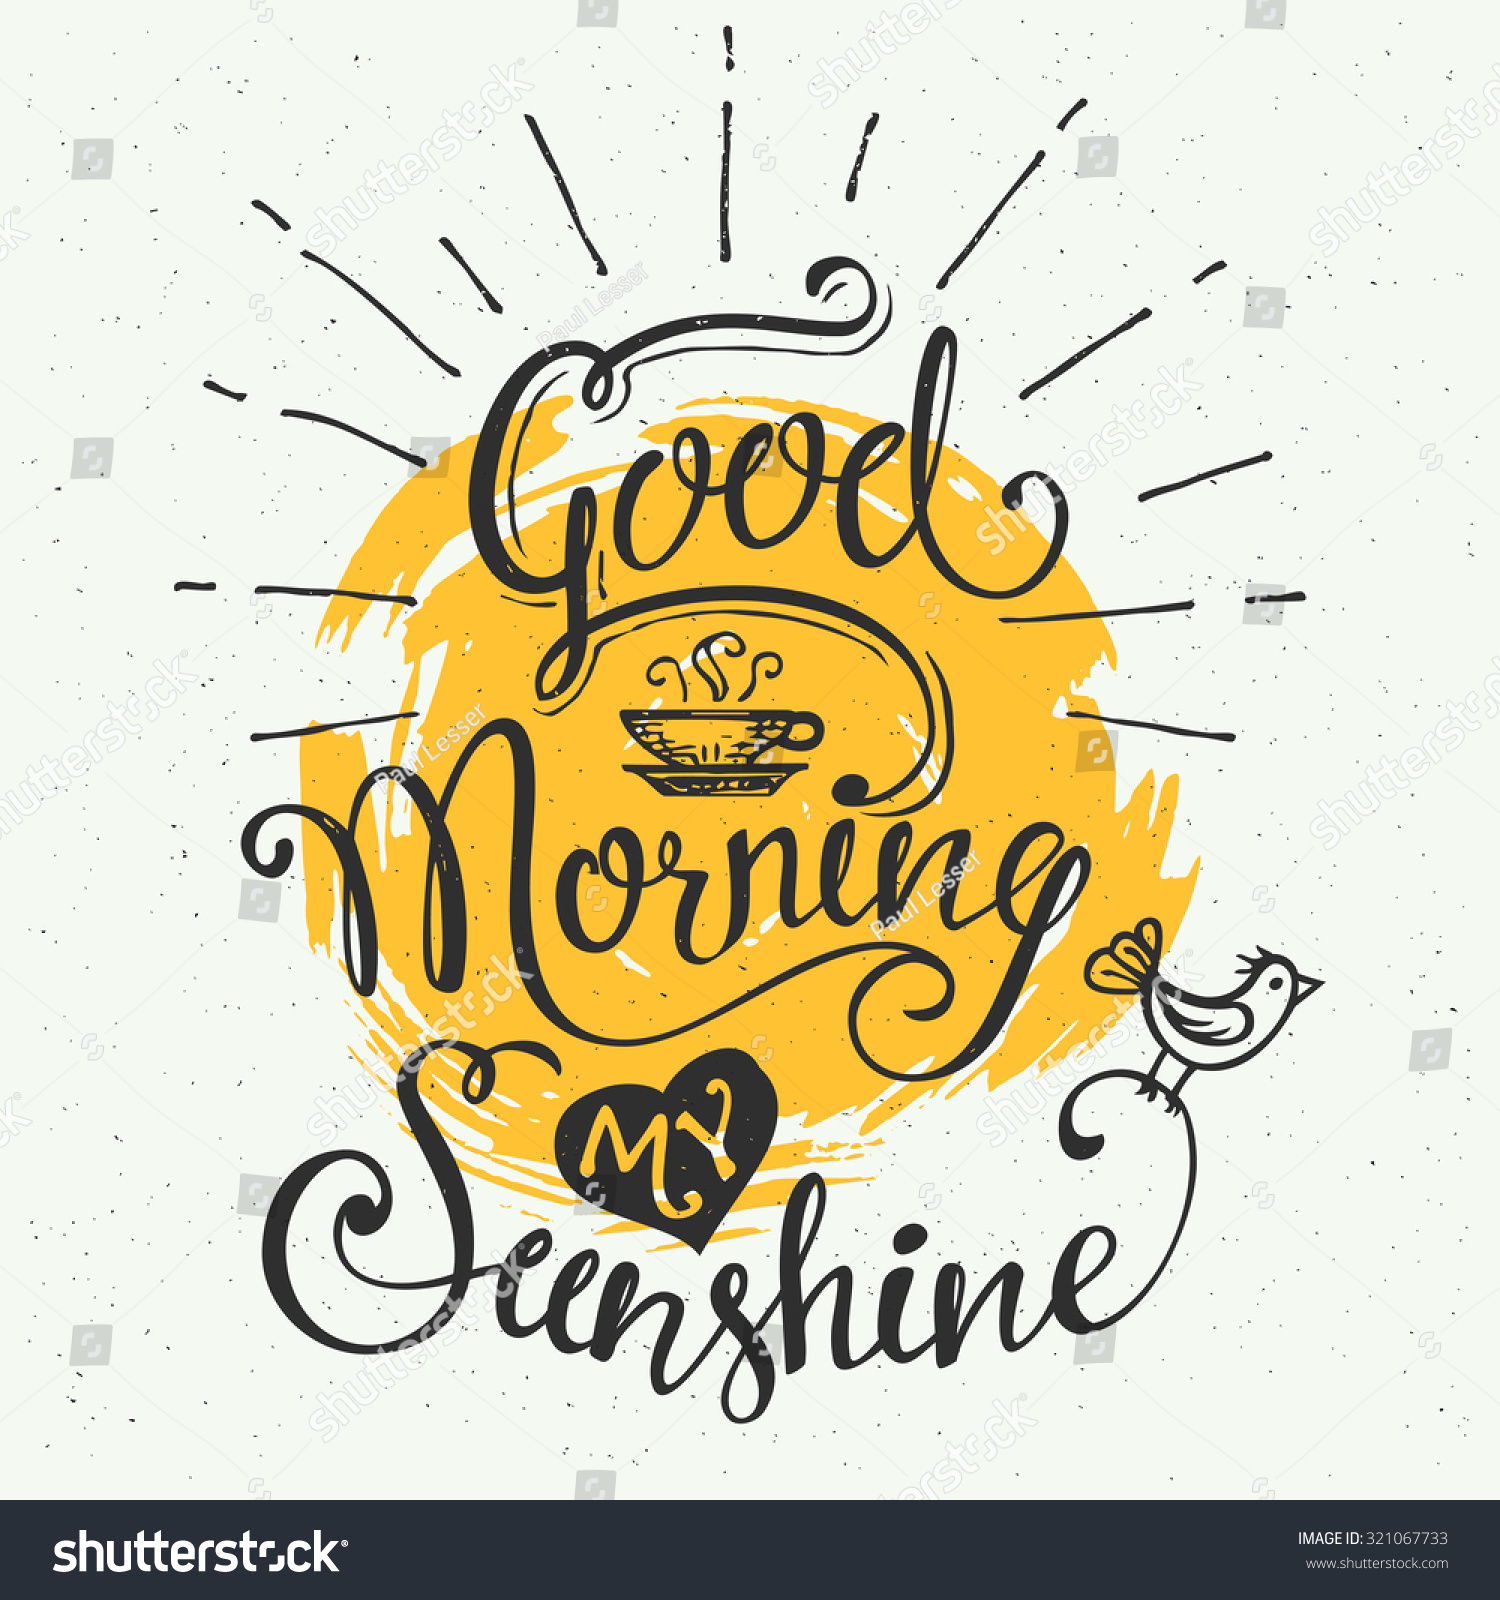 Good Morning My Sunshine Handdrawn Typographic Stock Vector 321067733 Shutterstock